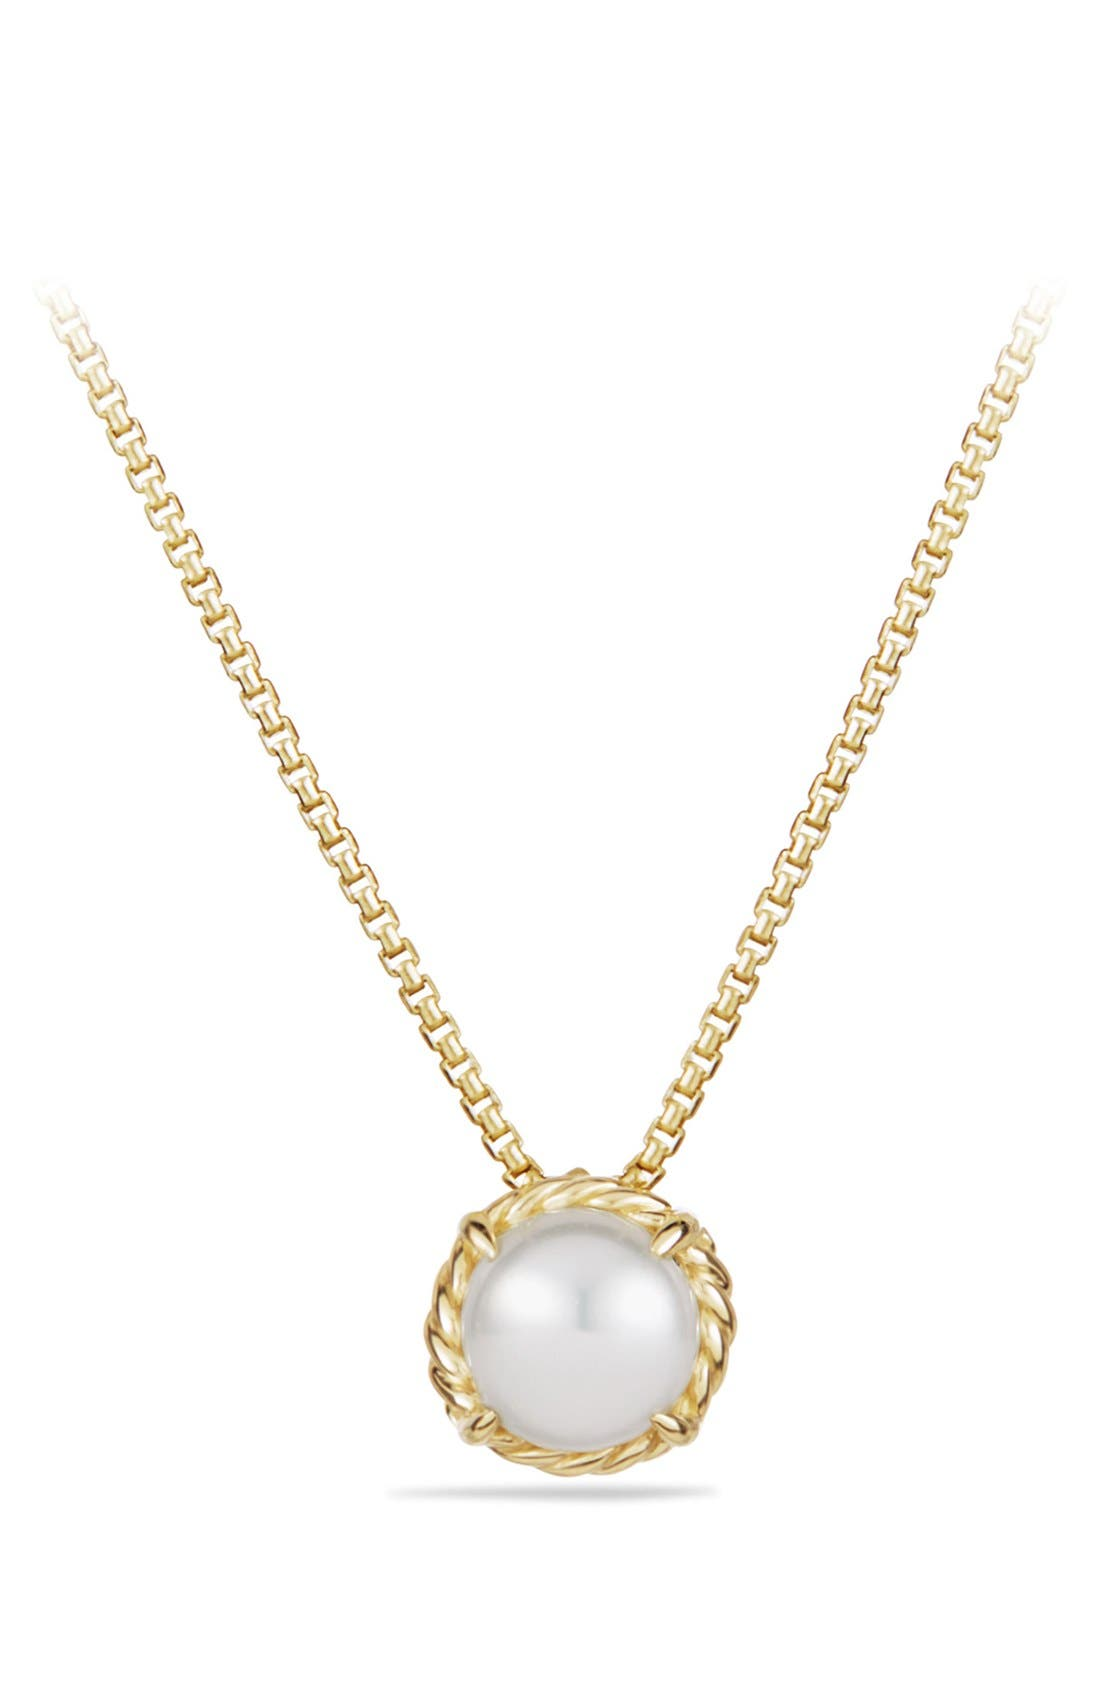 David Yurman 'Châtelaine' Pendant Necklace with Freshwater Pearl in 18K Gold